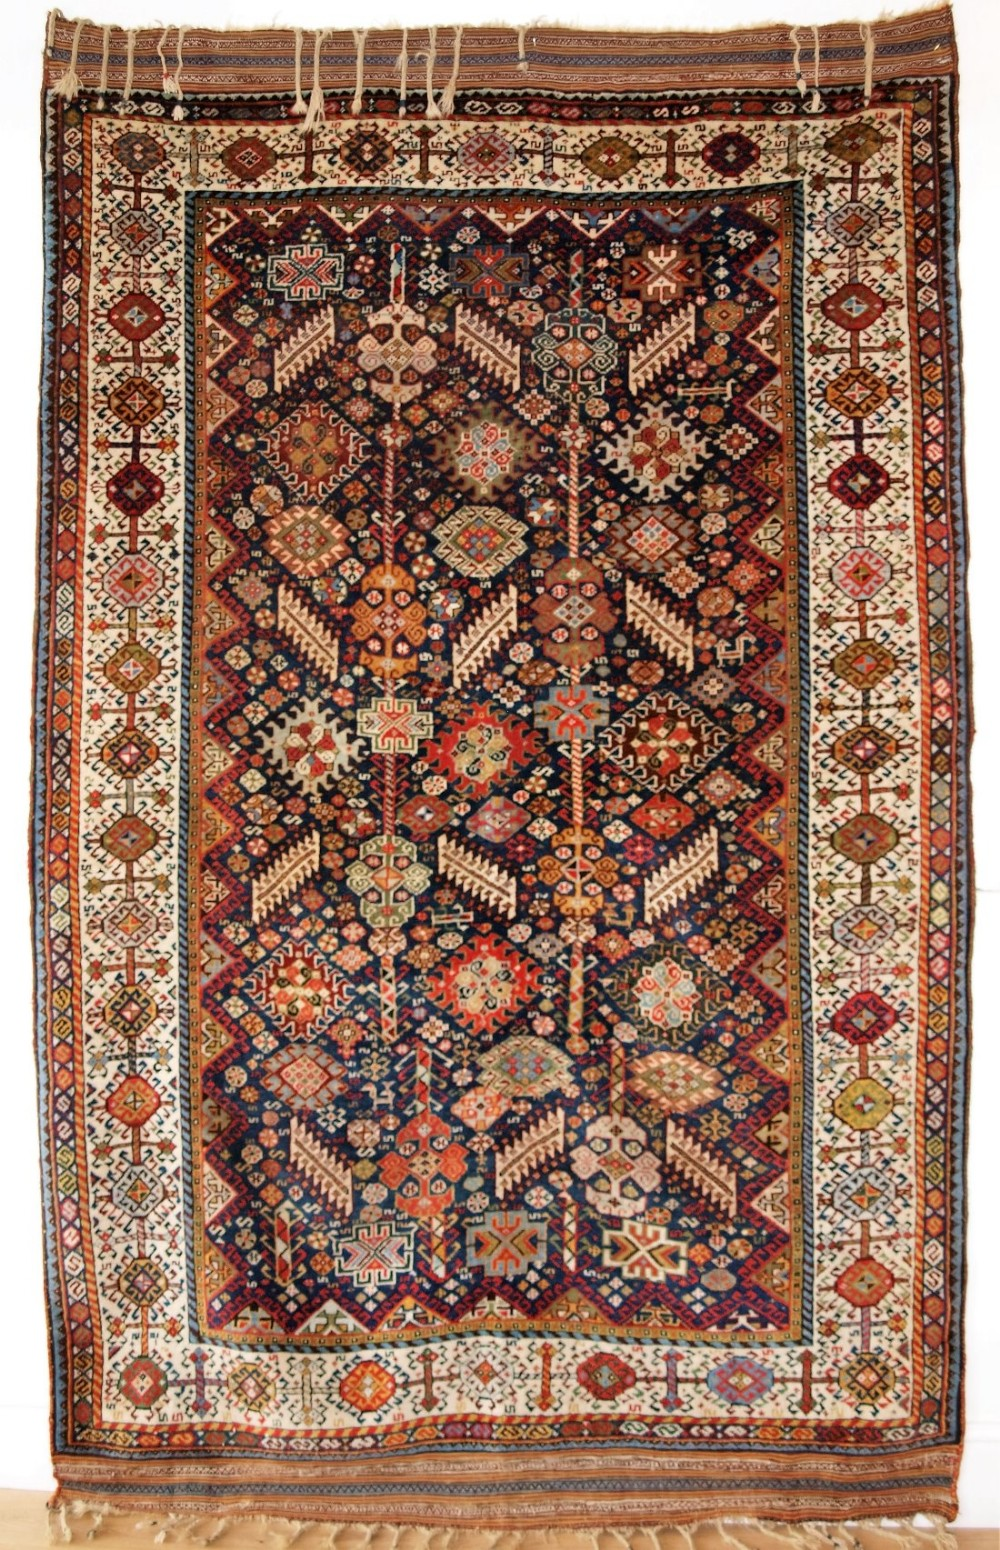 antique south west persian shekarlu qashqai rug excellent design soft wool a superb rug circa 1880